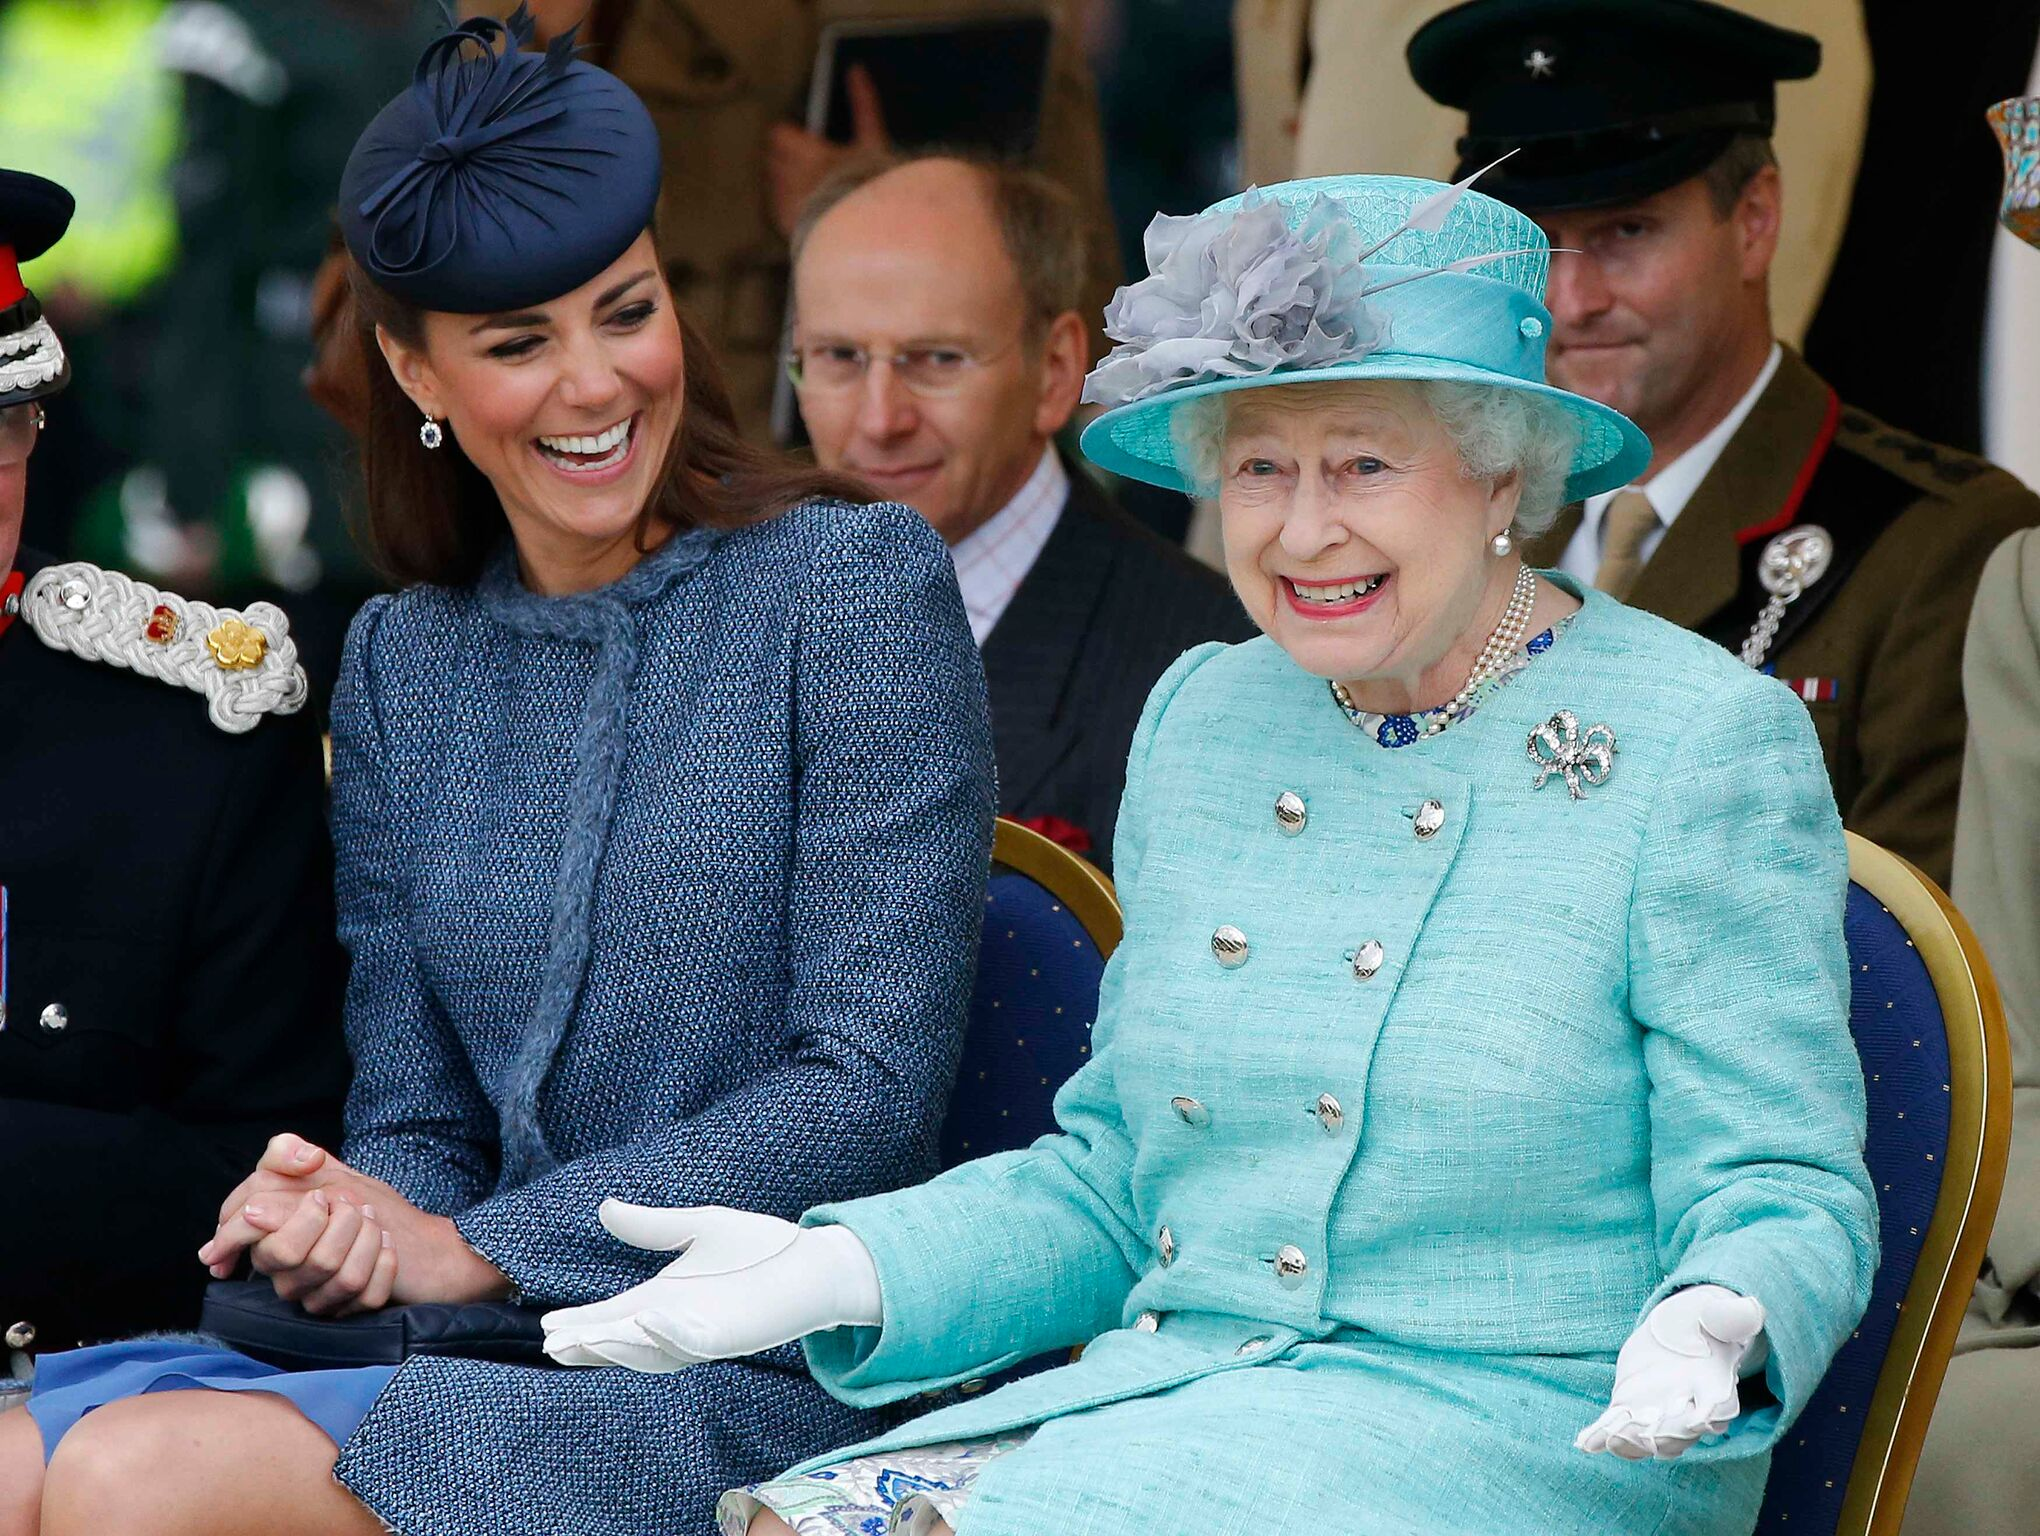 Duchess of Cambridge and Queen Elizabeth II watch part of a children's sports event | Getty Images / Global Images Ukraine